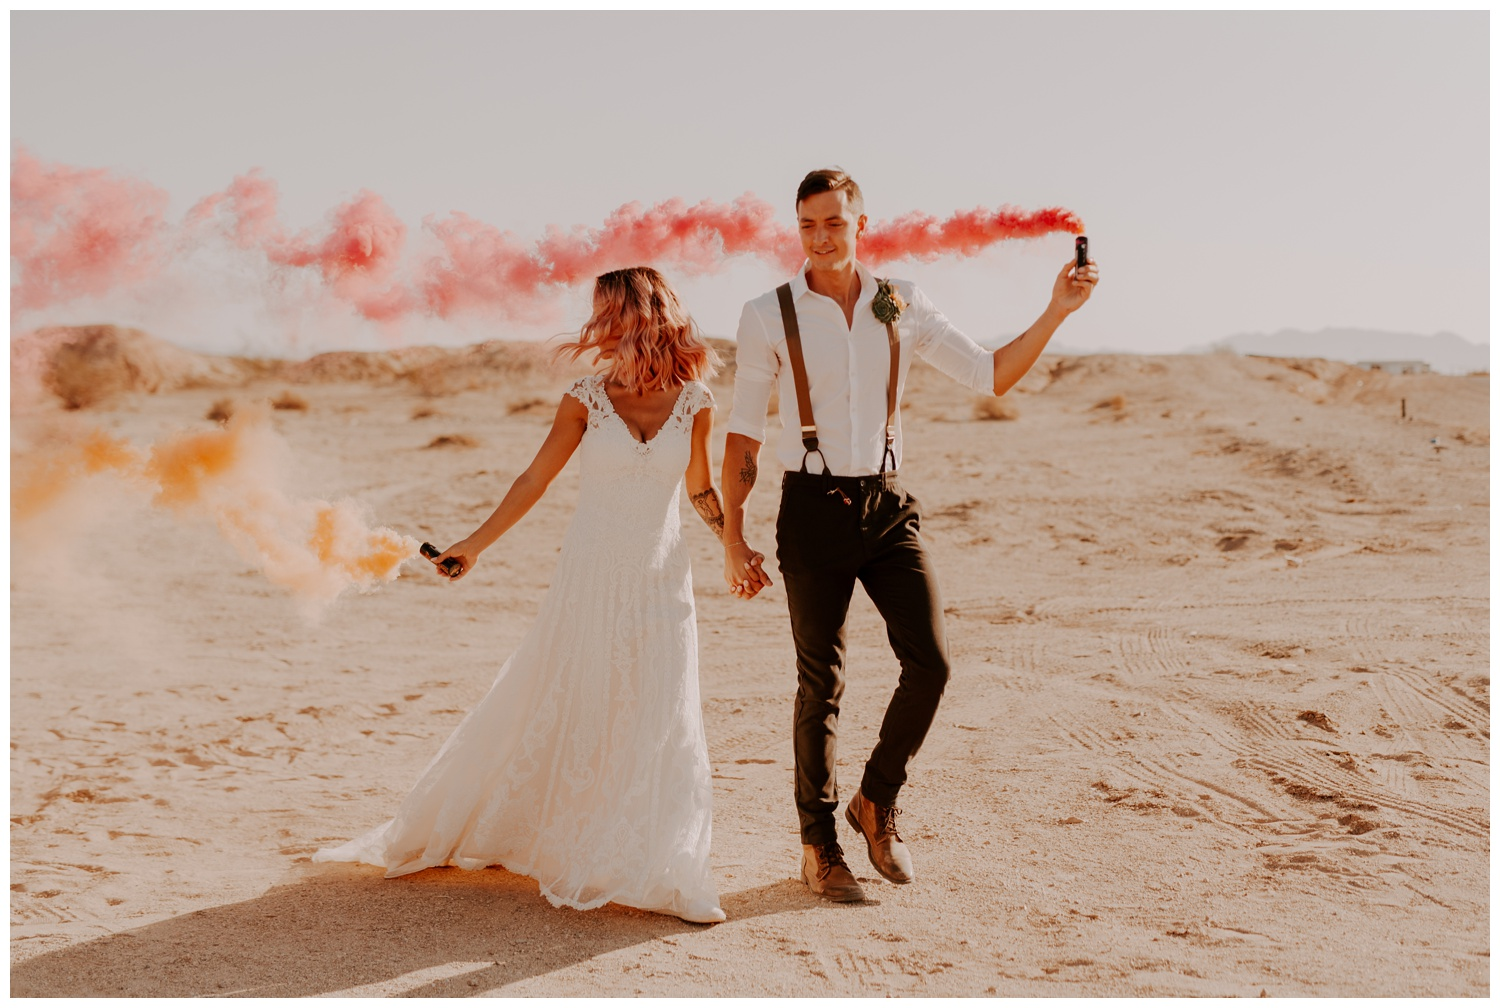 Salvation Mountain Elopement Palm Springs Pink Hair Bride - Jessica Heron Images_0145.jpg